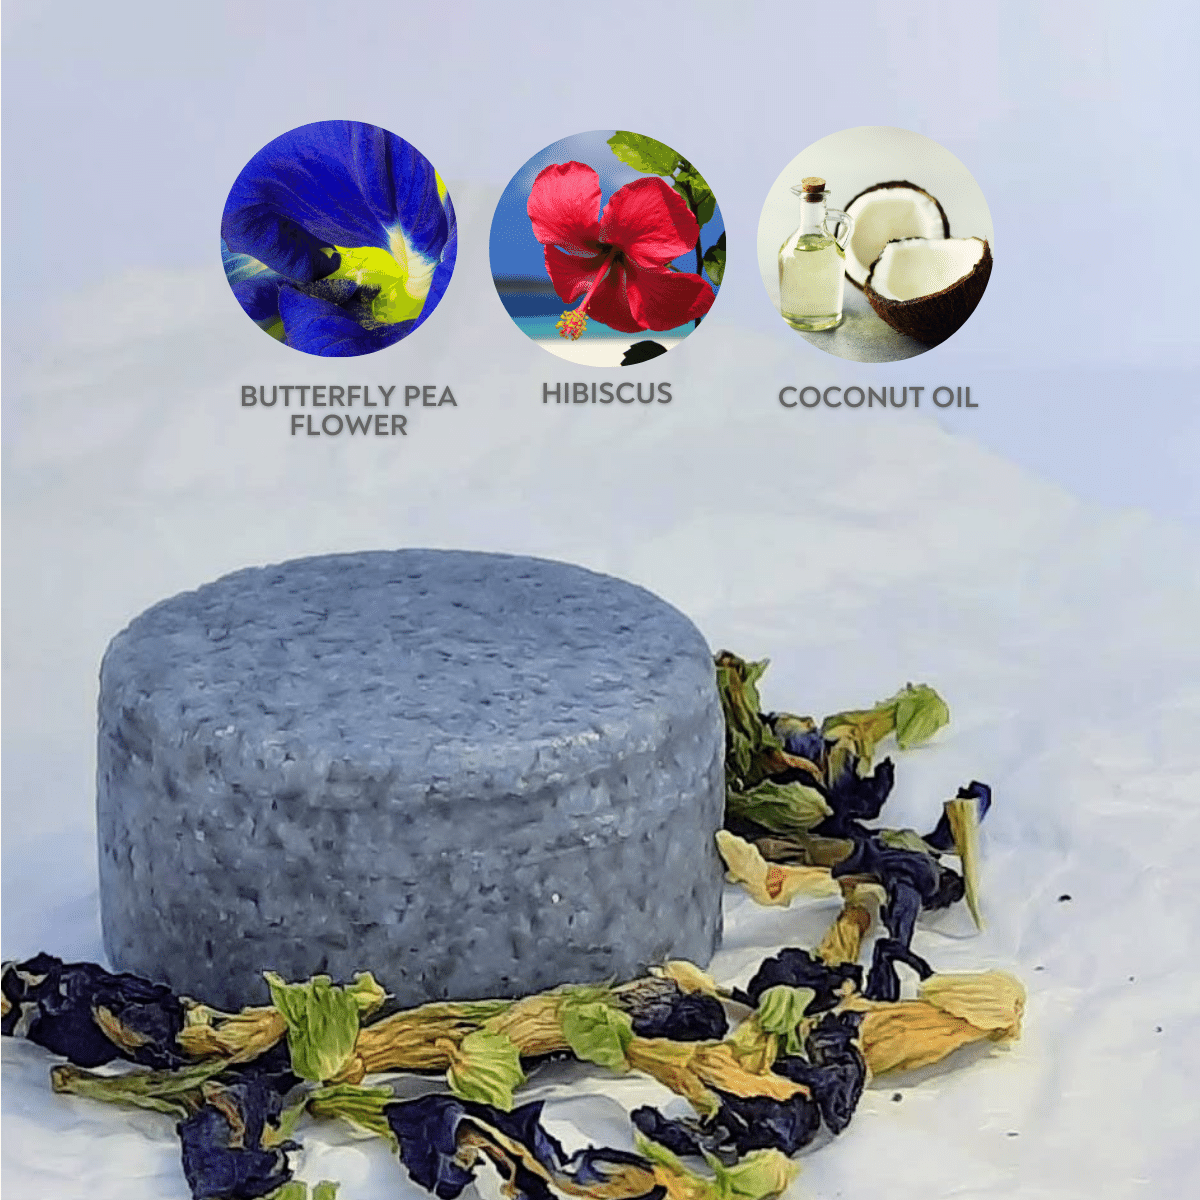 Shampoo Bar Butterfly Pea Flower